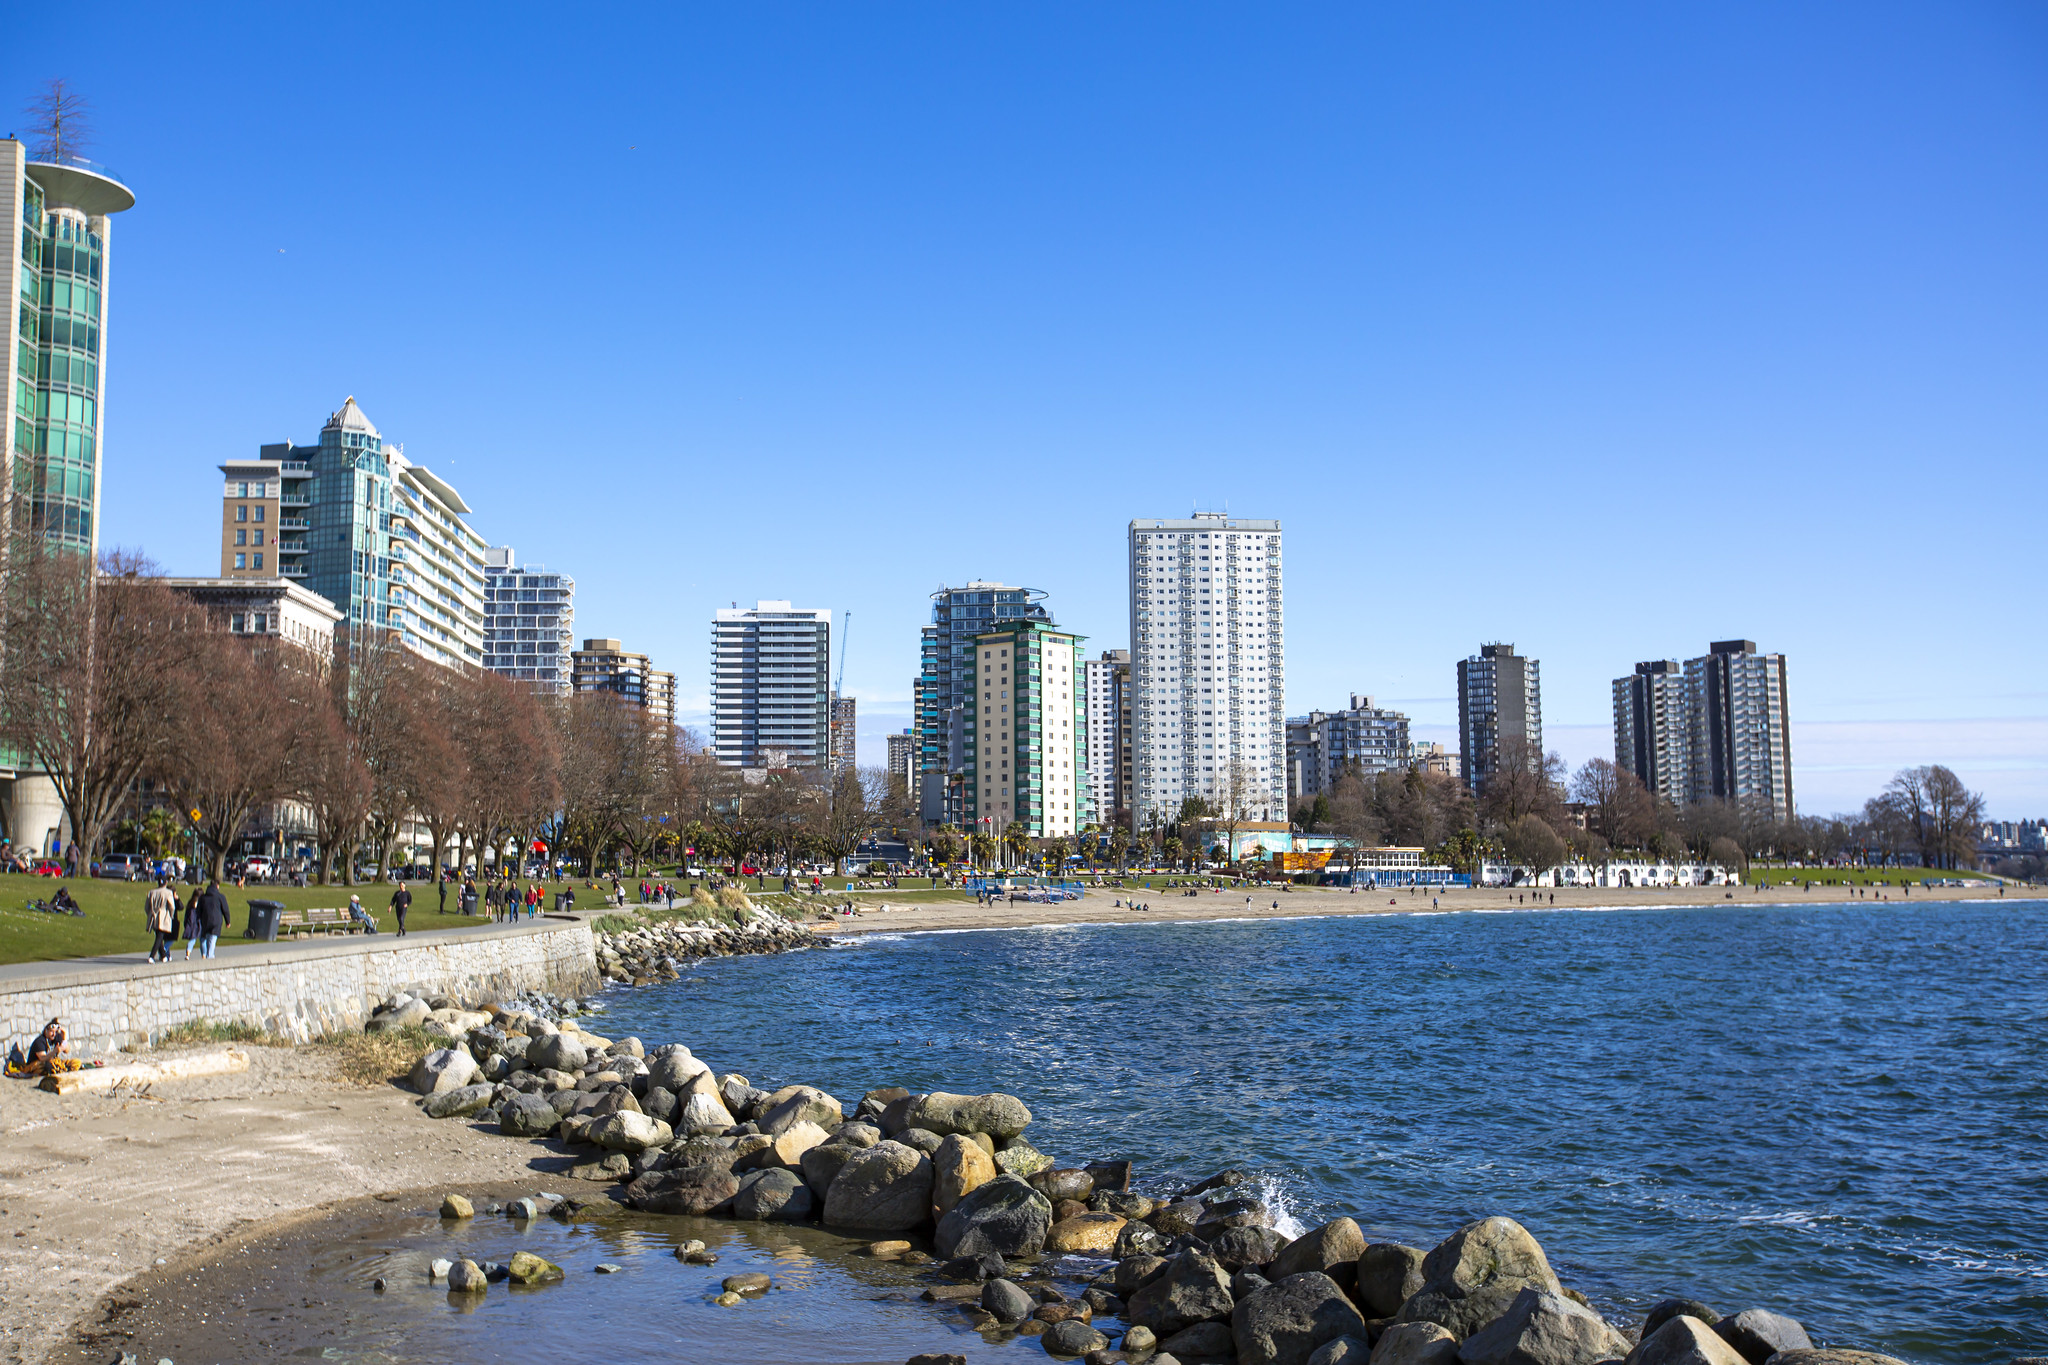 Vancouver Weather Forecast Calls For Sunshine and Toasty Temperatures This Week